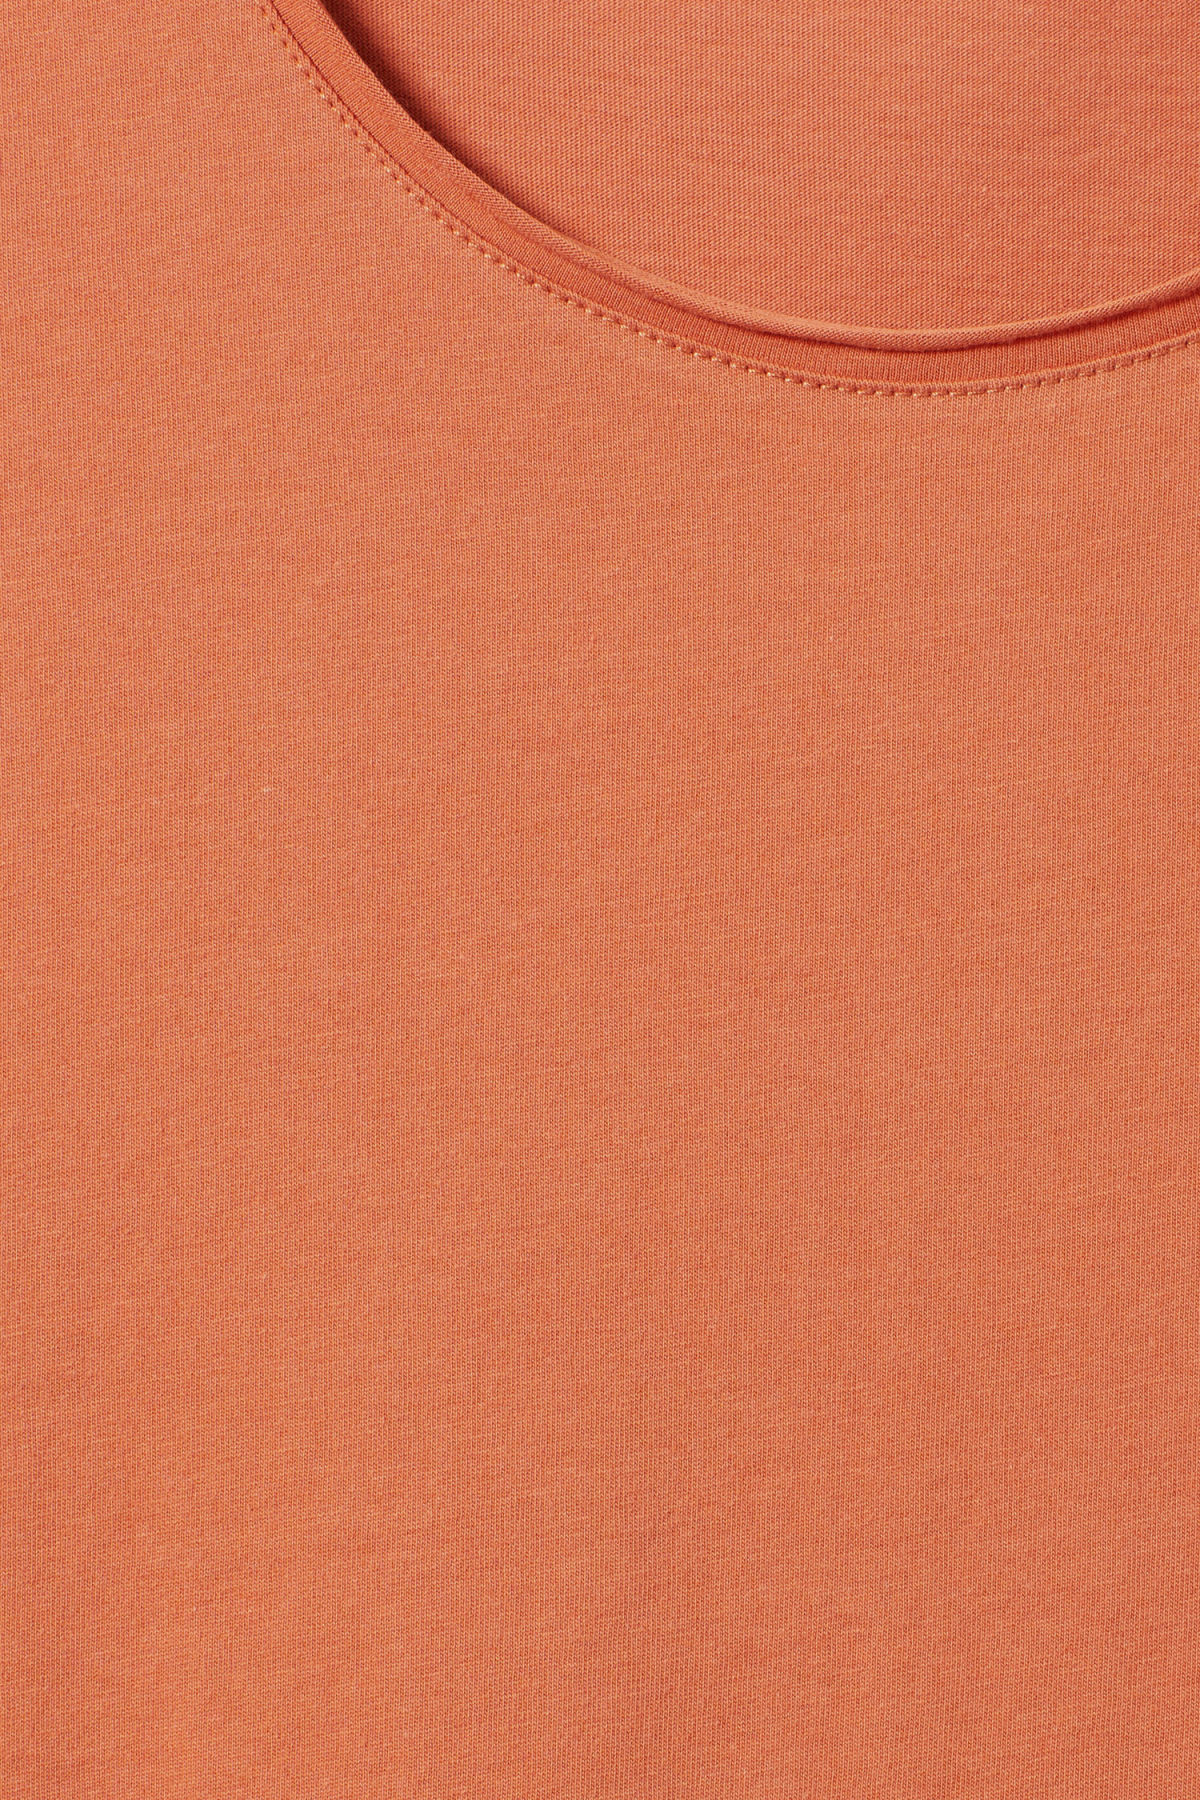 Detailed image of Weekday dark t-shirt in orange